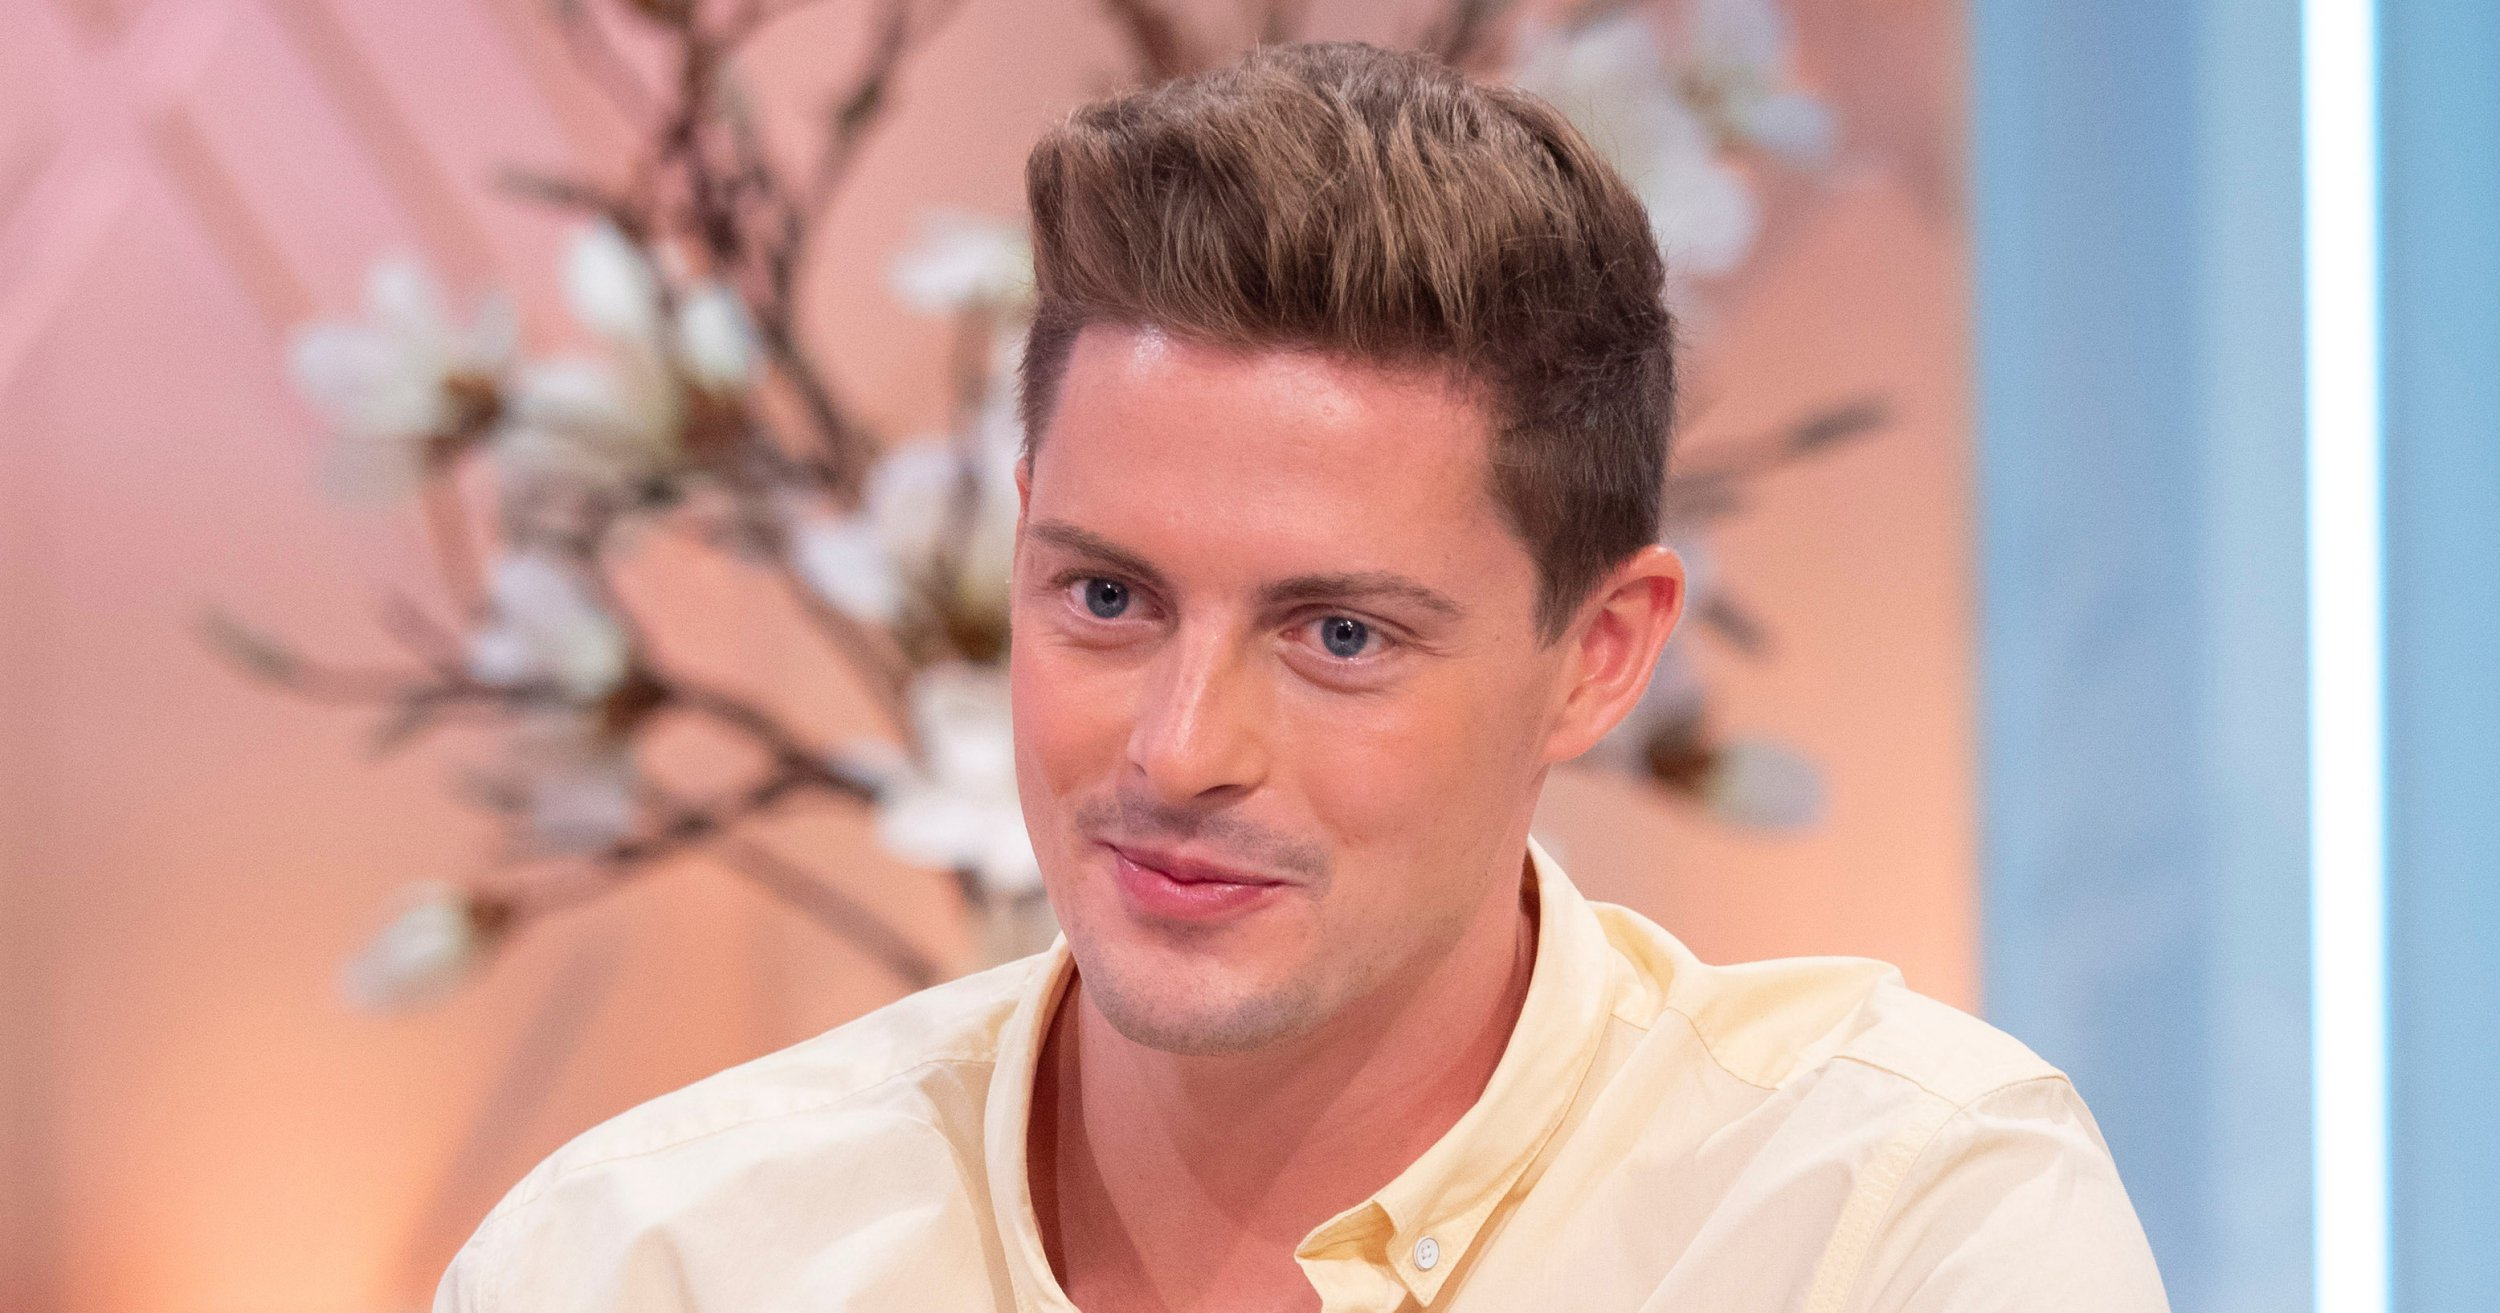 Alex George defends Love Island over aftercare backlash as he opens up about needing therapy over trolls